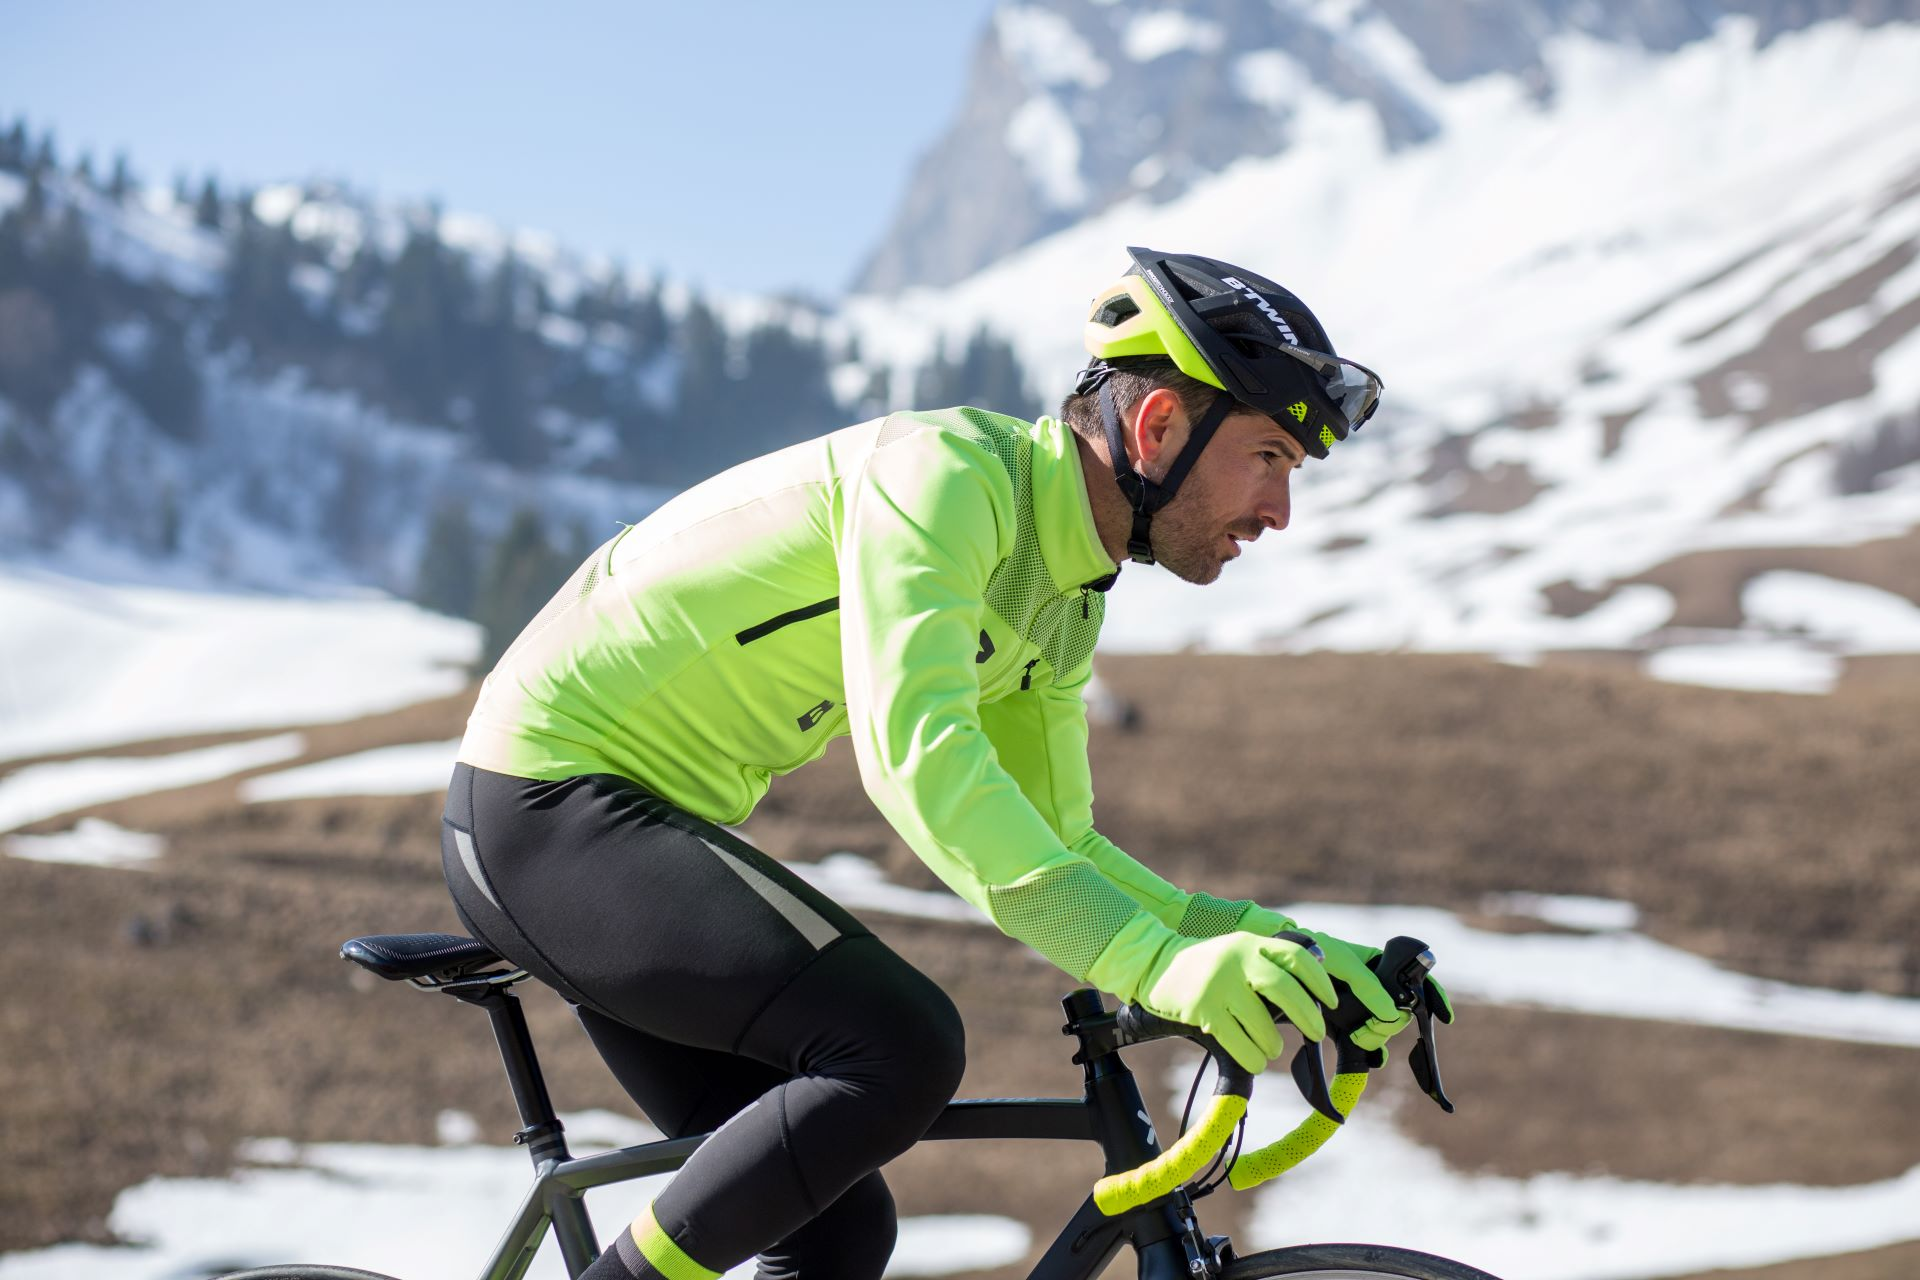 How To Keep Riding Your Bike Between Christmas And New Year's Eve?